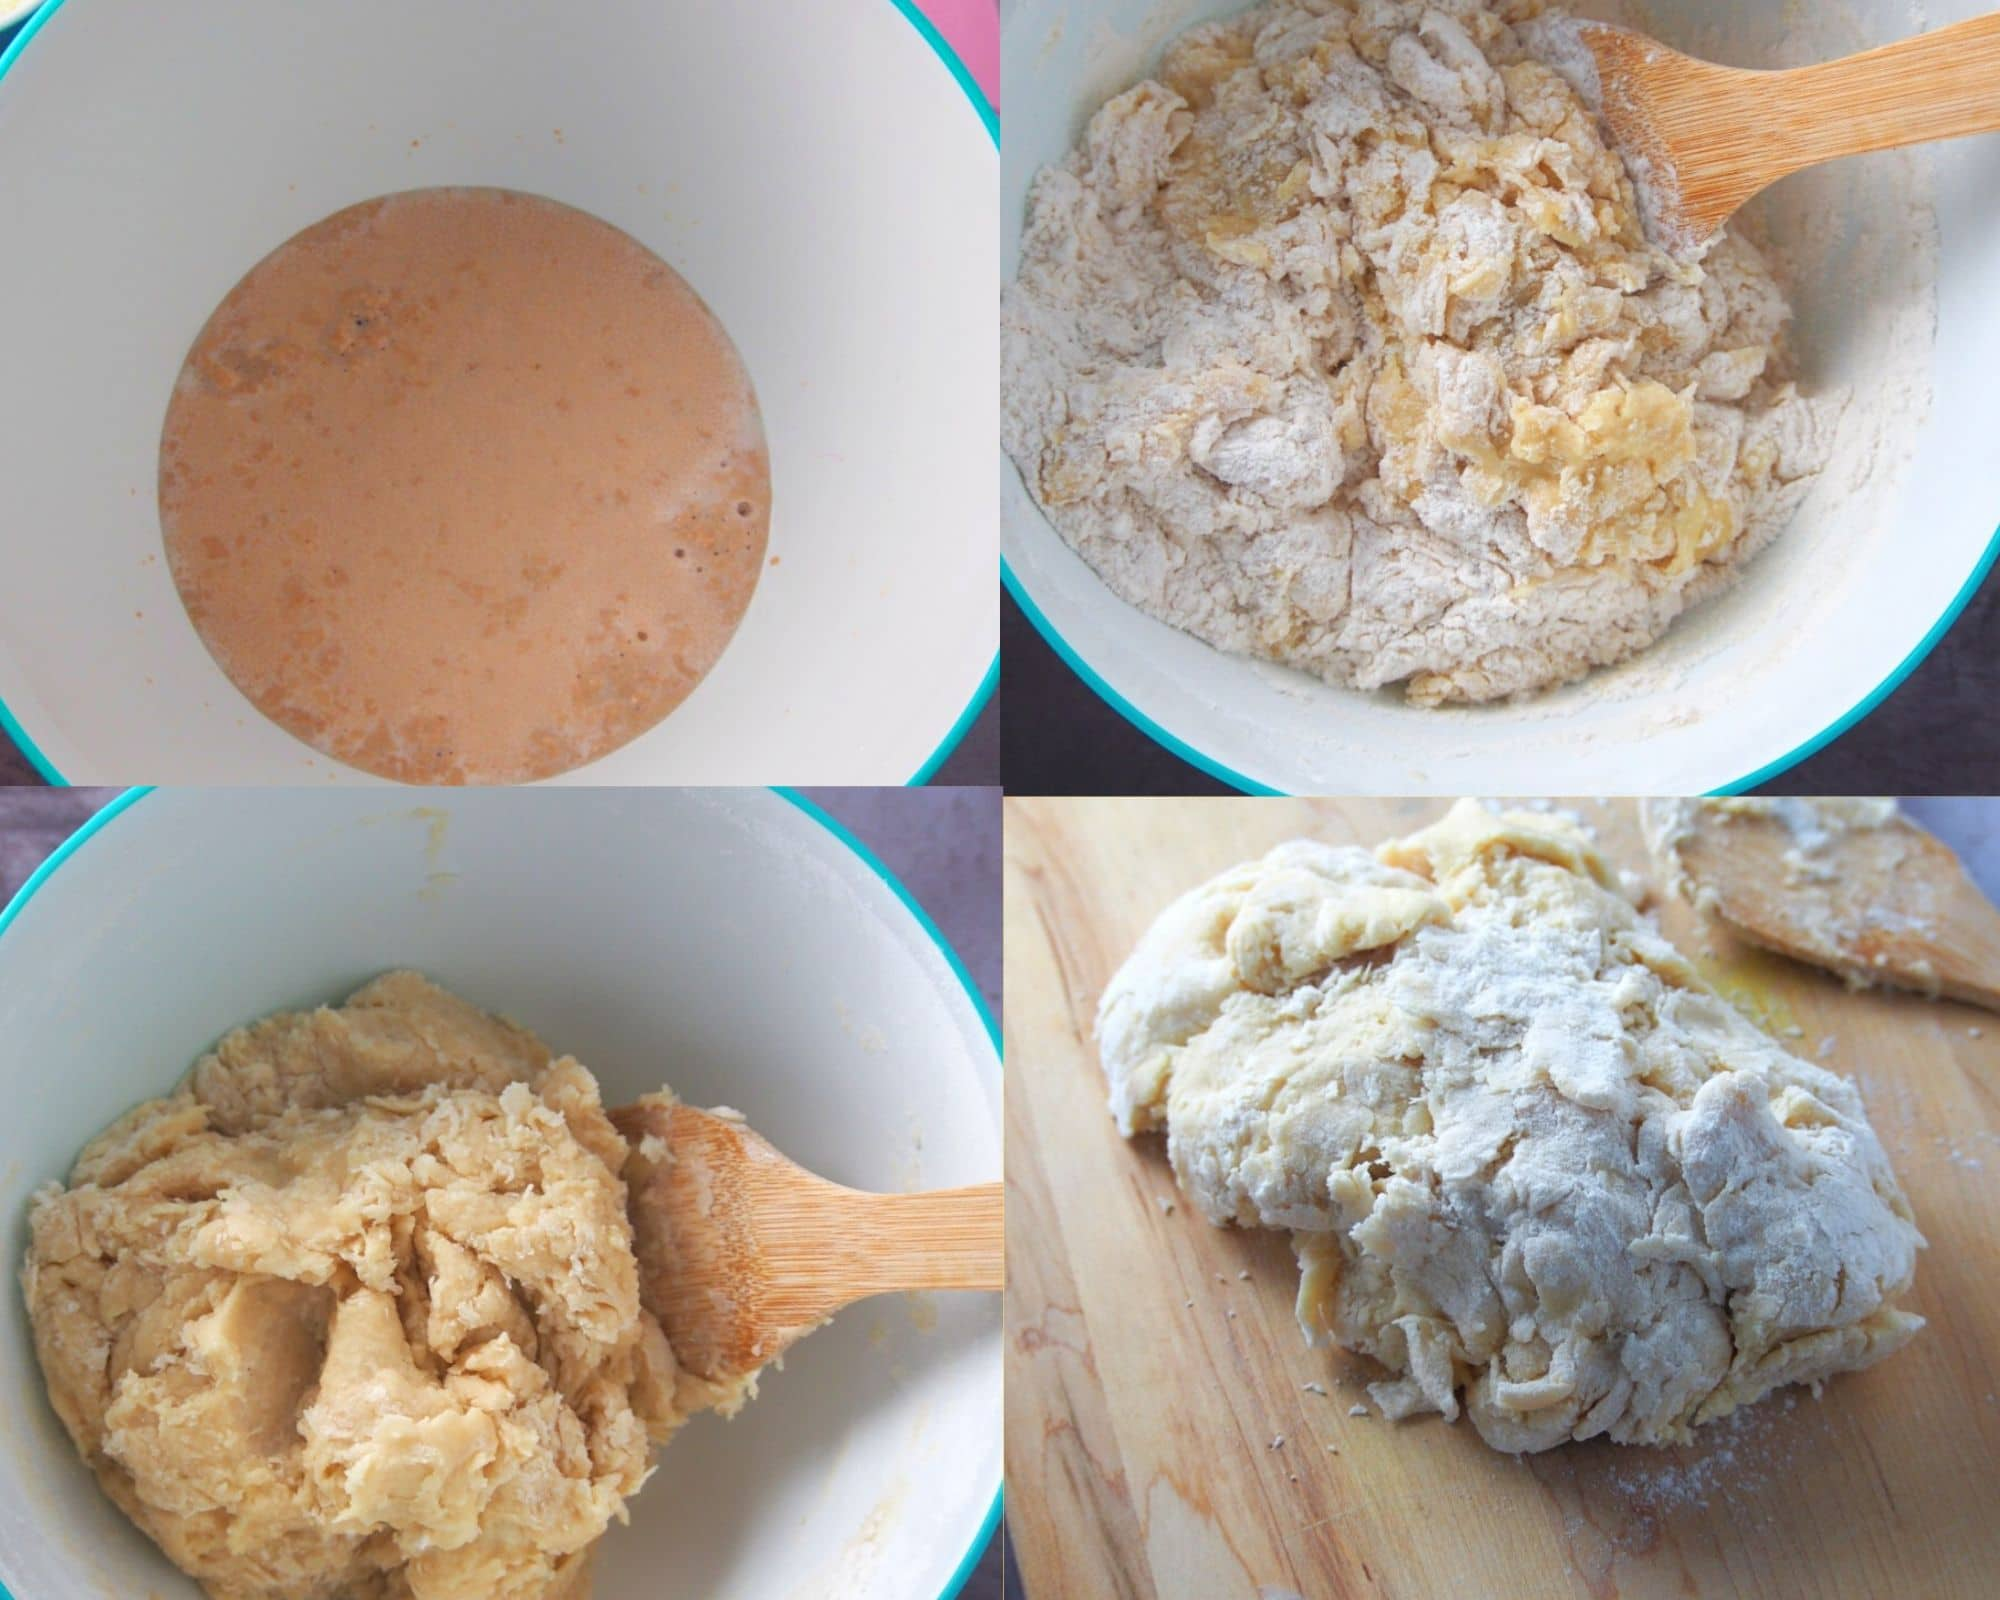 A collage showing the stages of mixing bread dough.